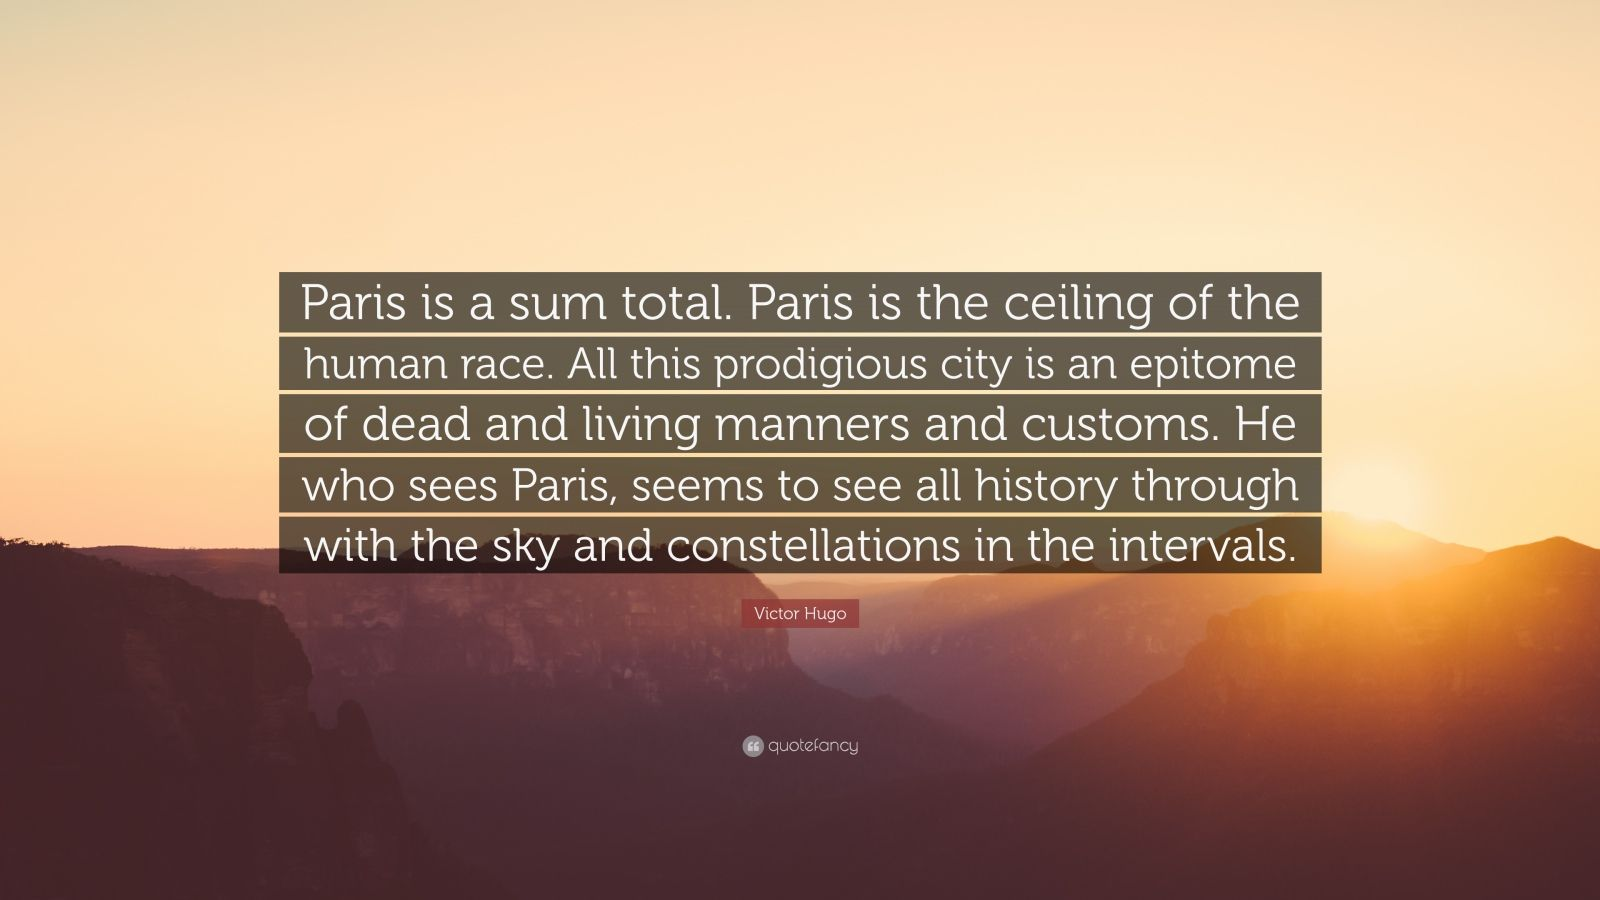 """Victor Hugo Quote: """"Paris is a sum total. Paris is the ceiling of the human race. All this prodigious city is an epitome of dead and living manners and customs. He who sees Paris, seems to see all history through with the sky and constellations in the intervals."""""""